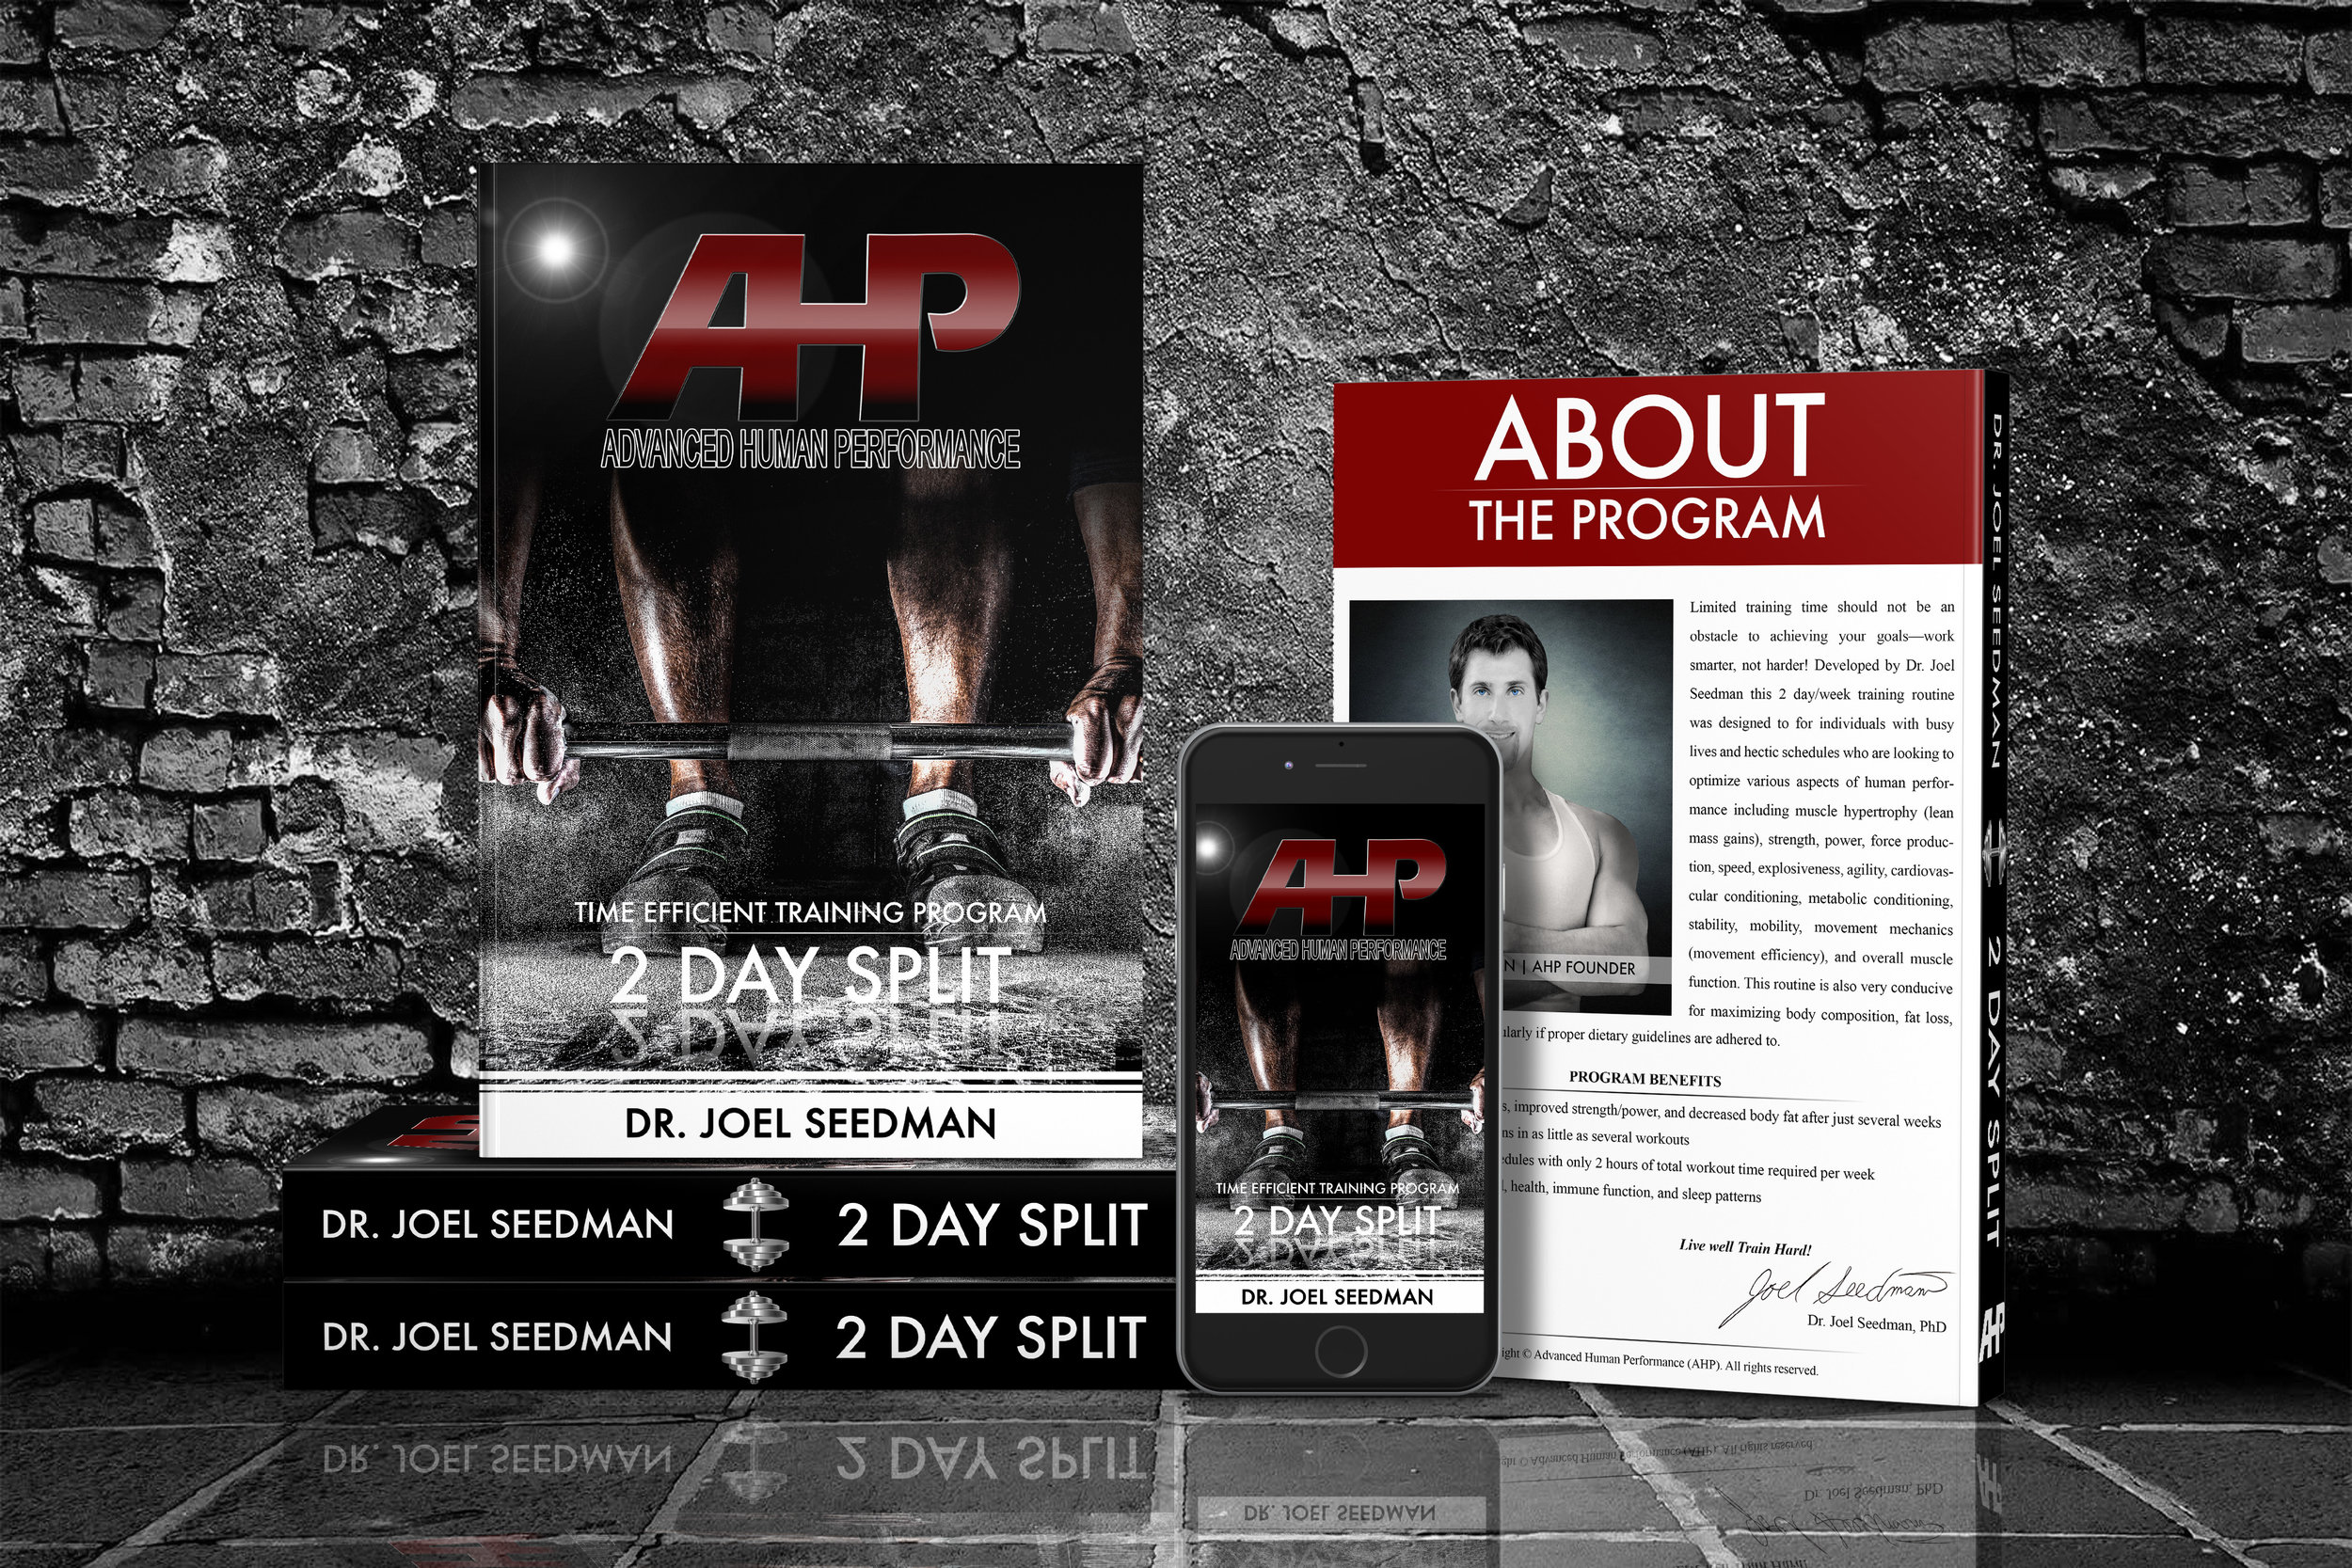 2-Day Split Book Display - Main Product Page.jpg